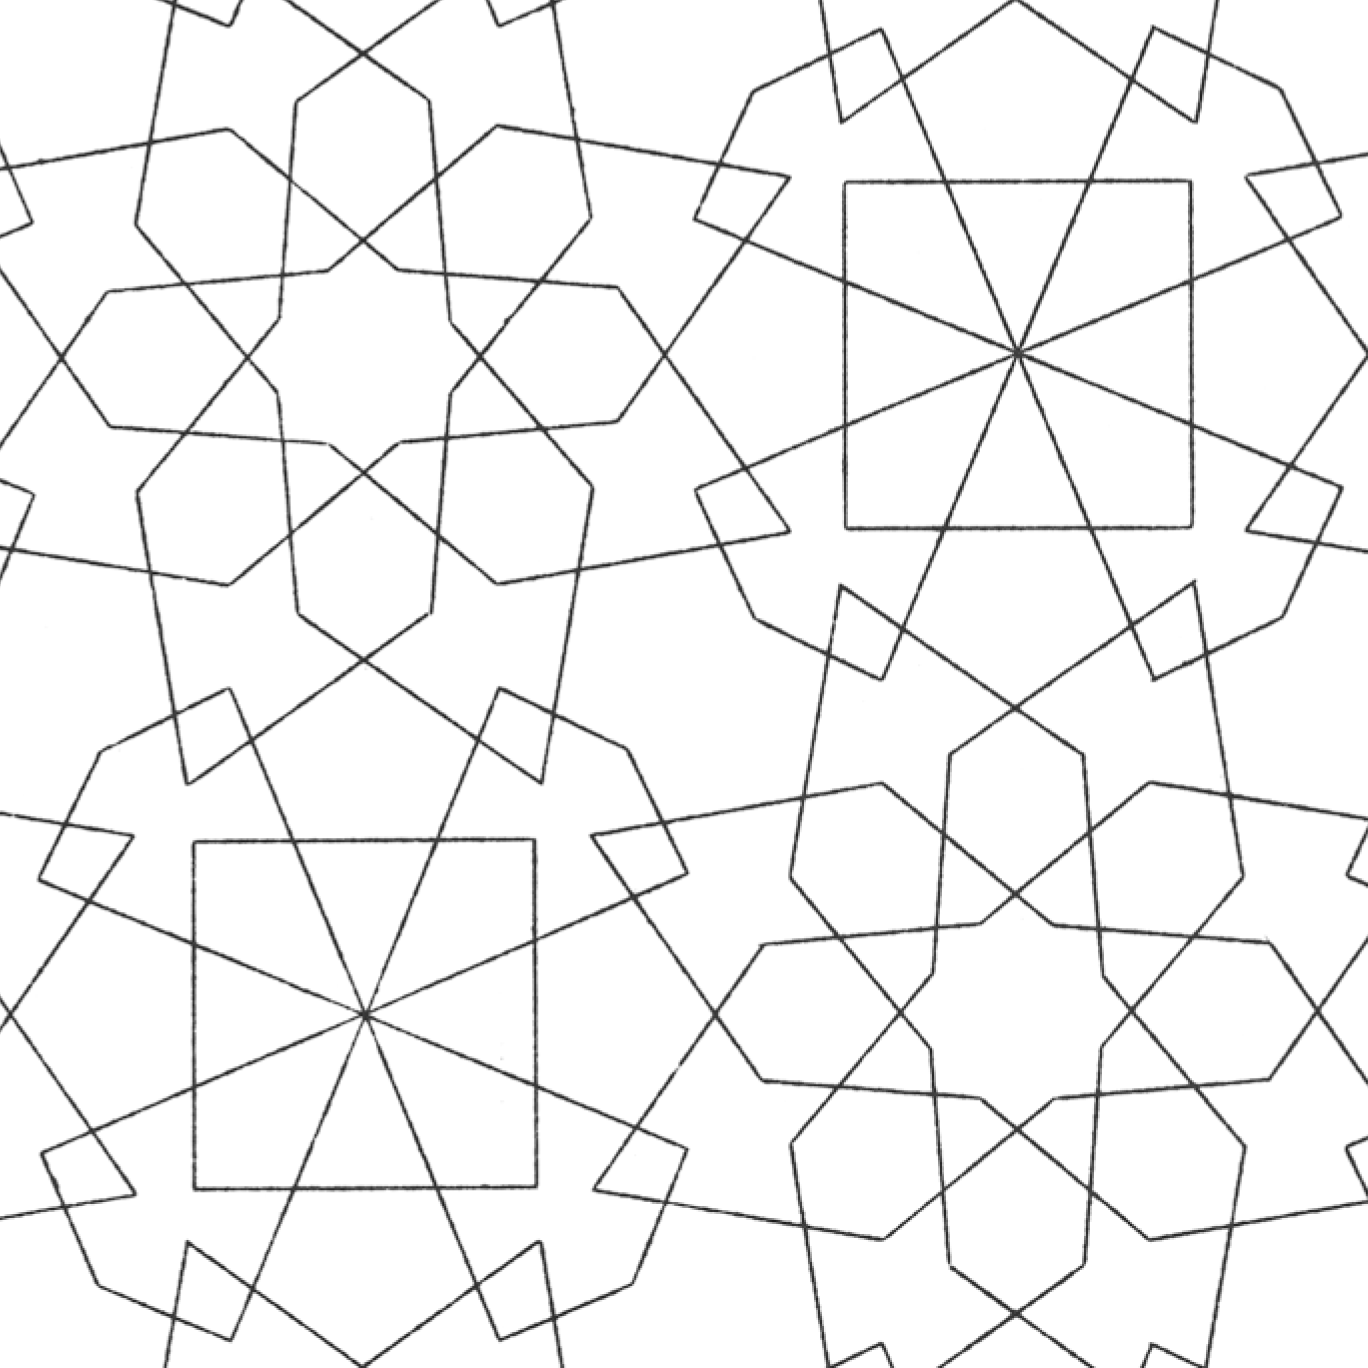 coloring pages islamic patterns drawing - photo#15